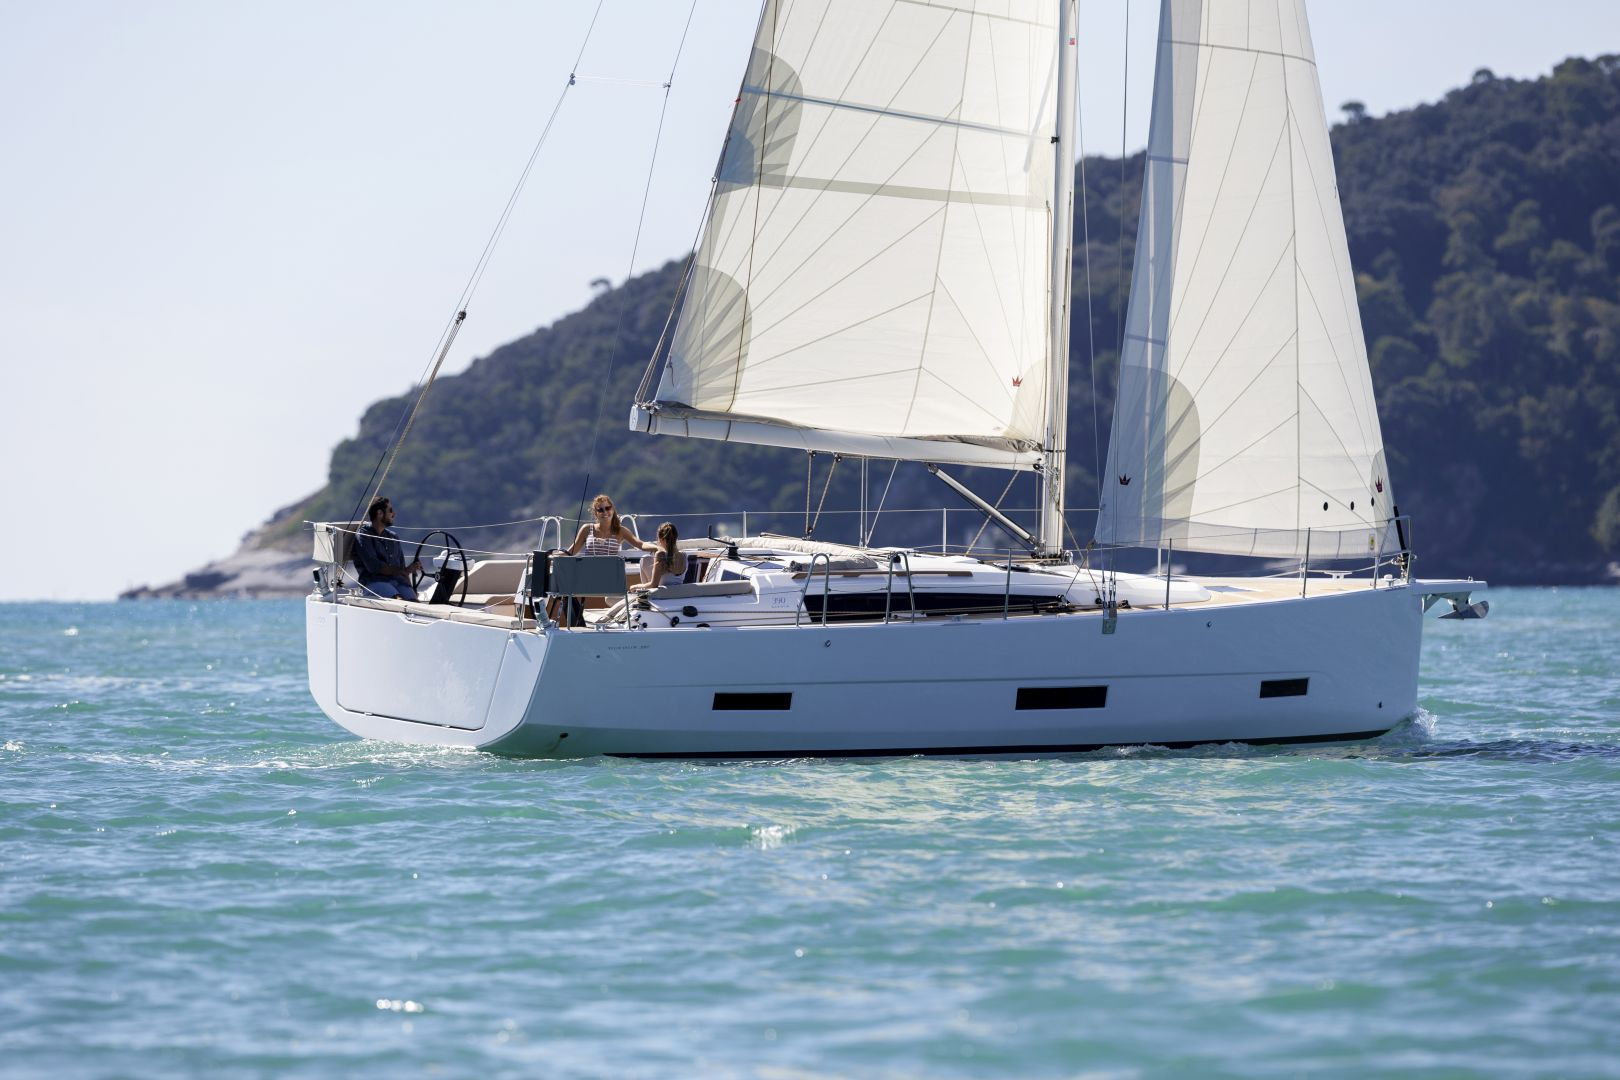 Dufour 390 Prestige - Sailing Yacht for Charter in Greece